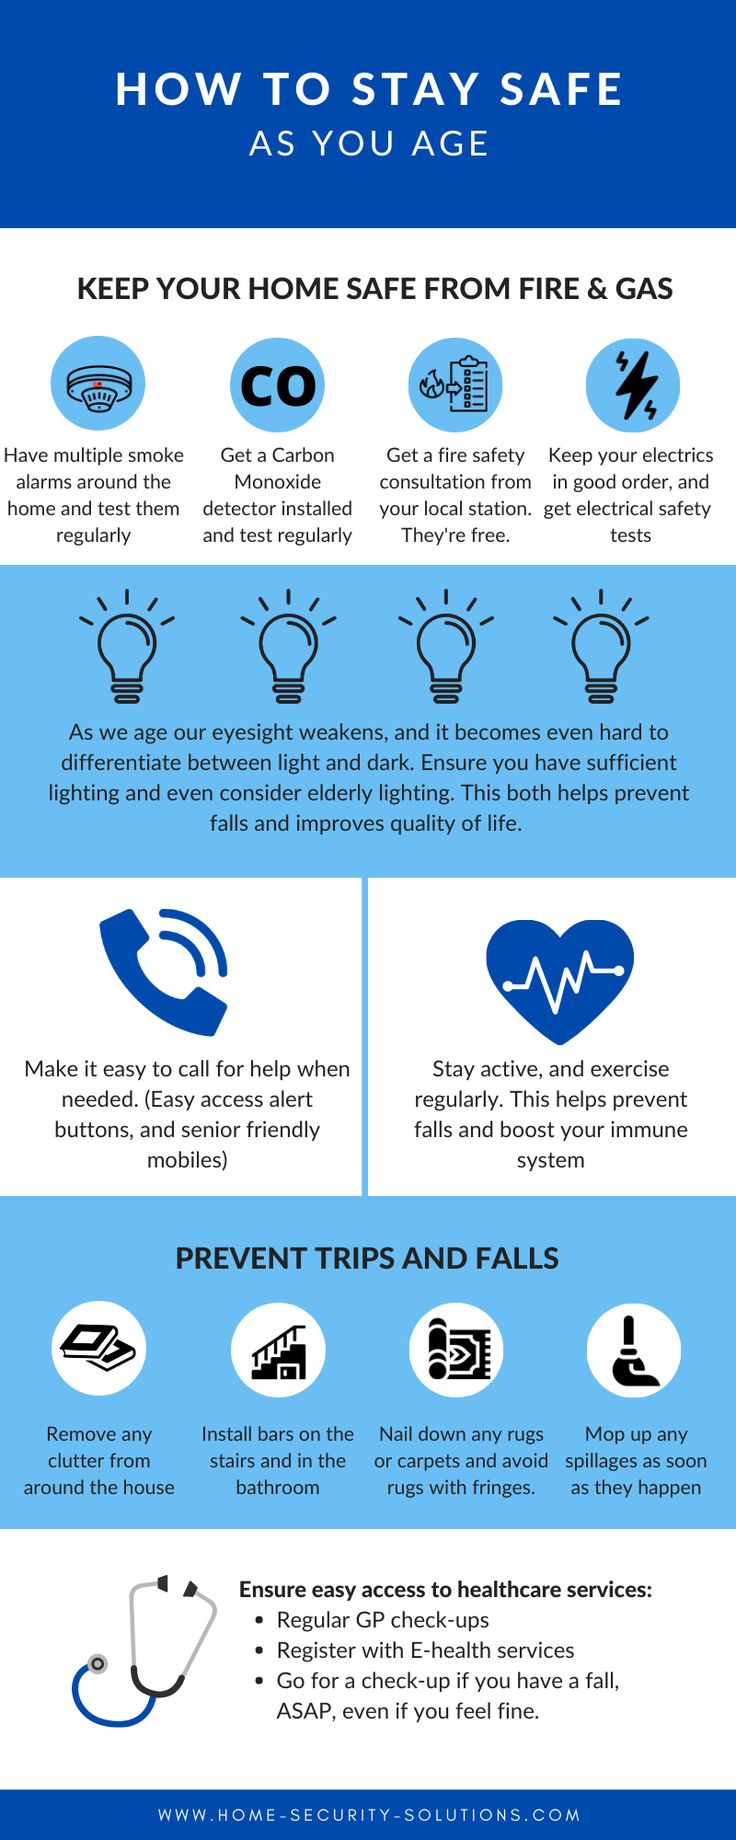 A home safety checklist for seniors. We all age, ensure